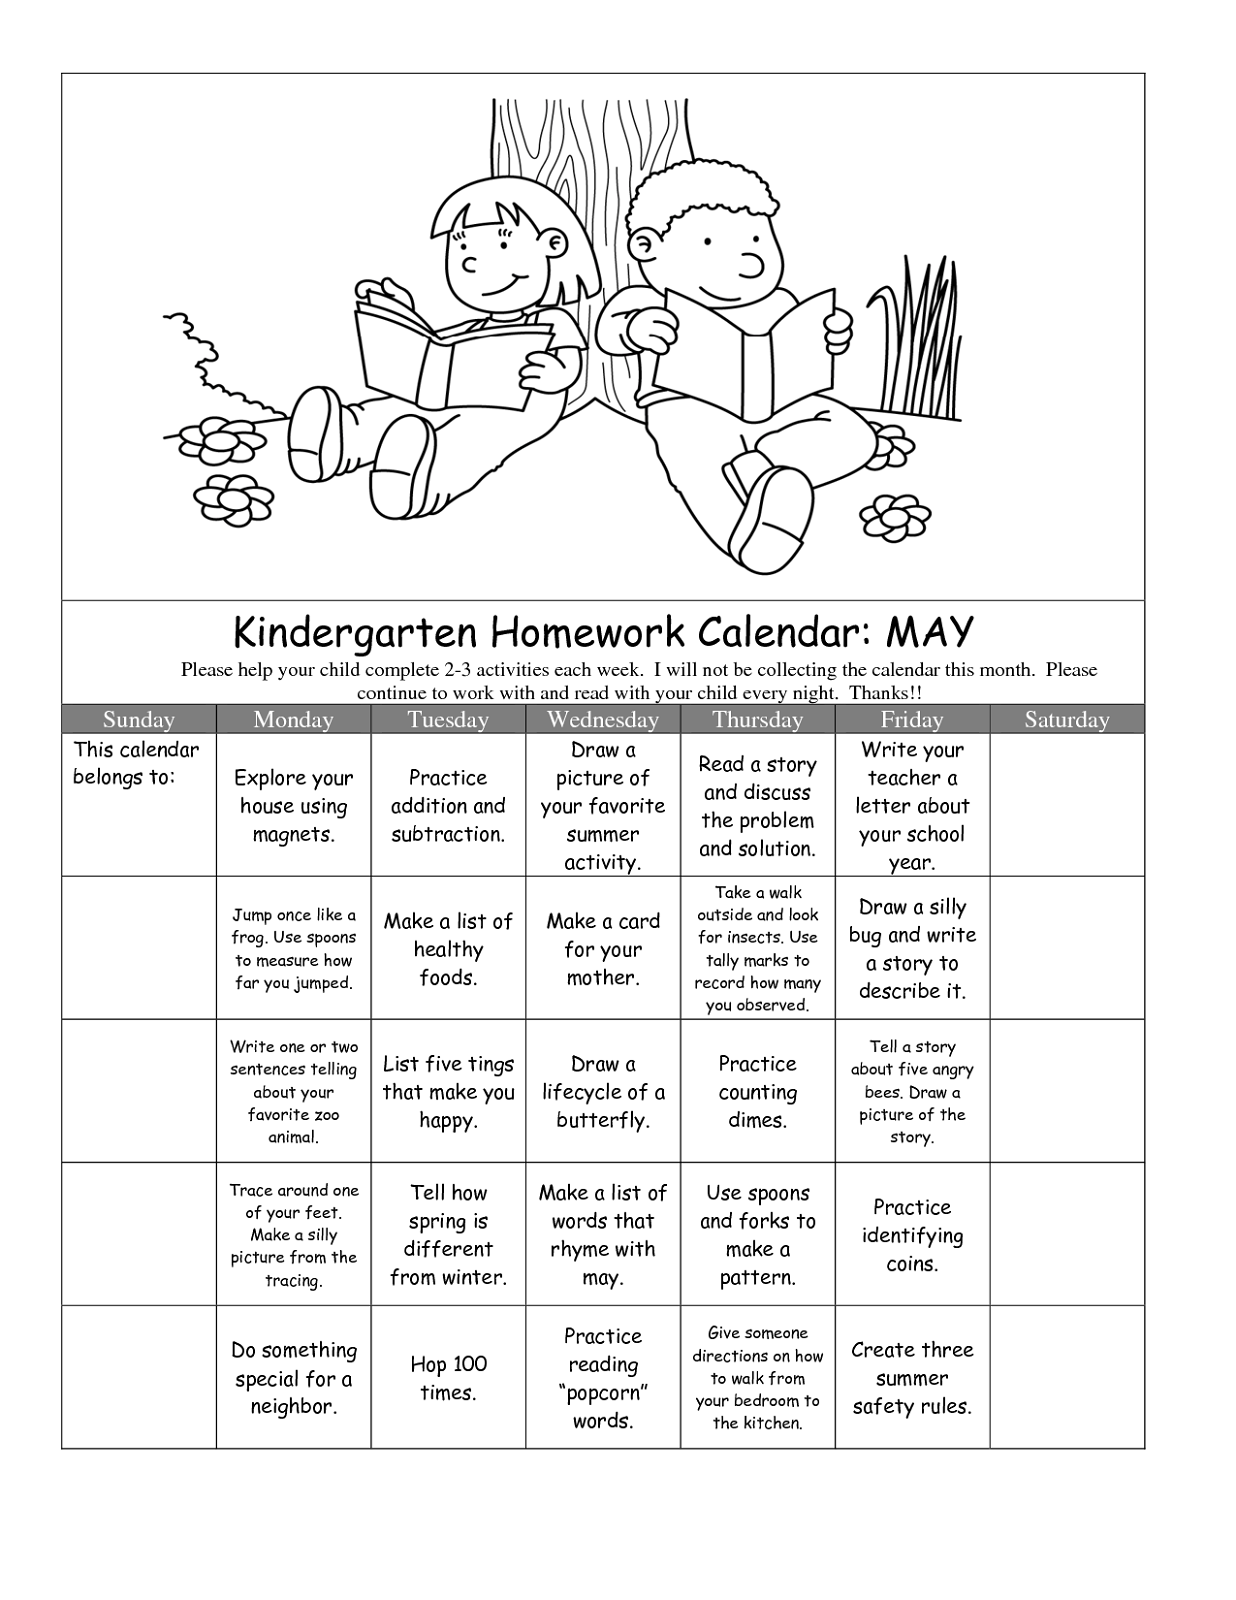 children's homework sheets 4